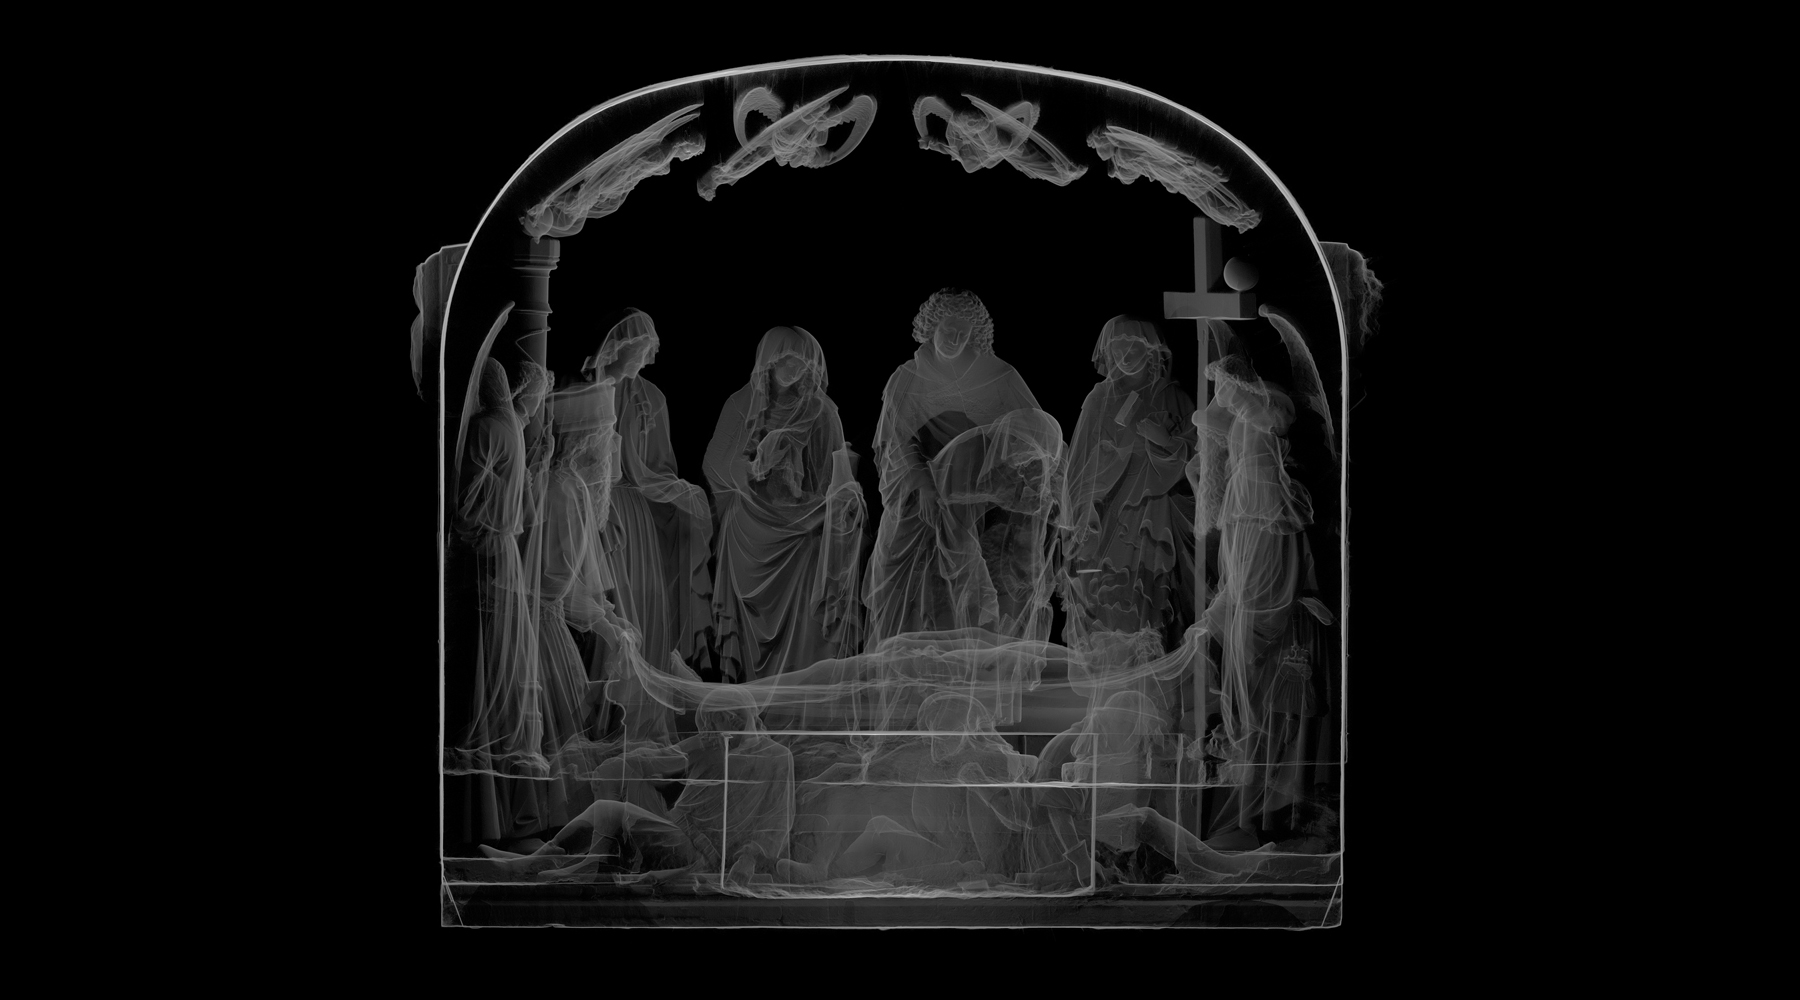 16 Entombment, Saint-Martin church, Pont-à-Mousson - Ortho-image